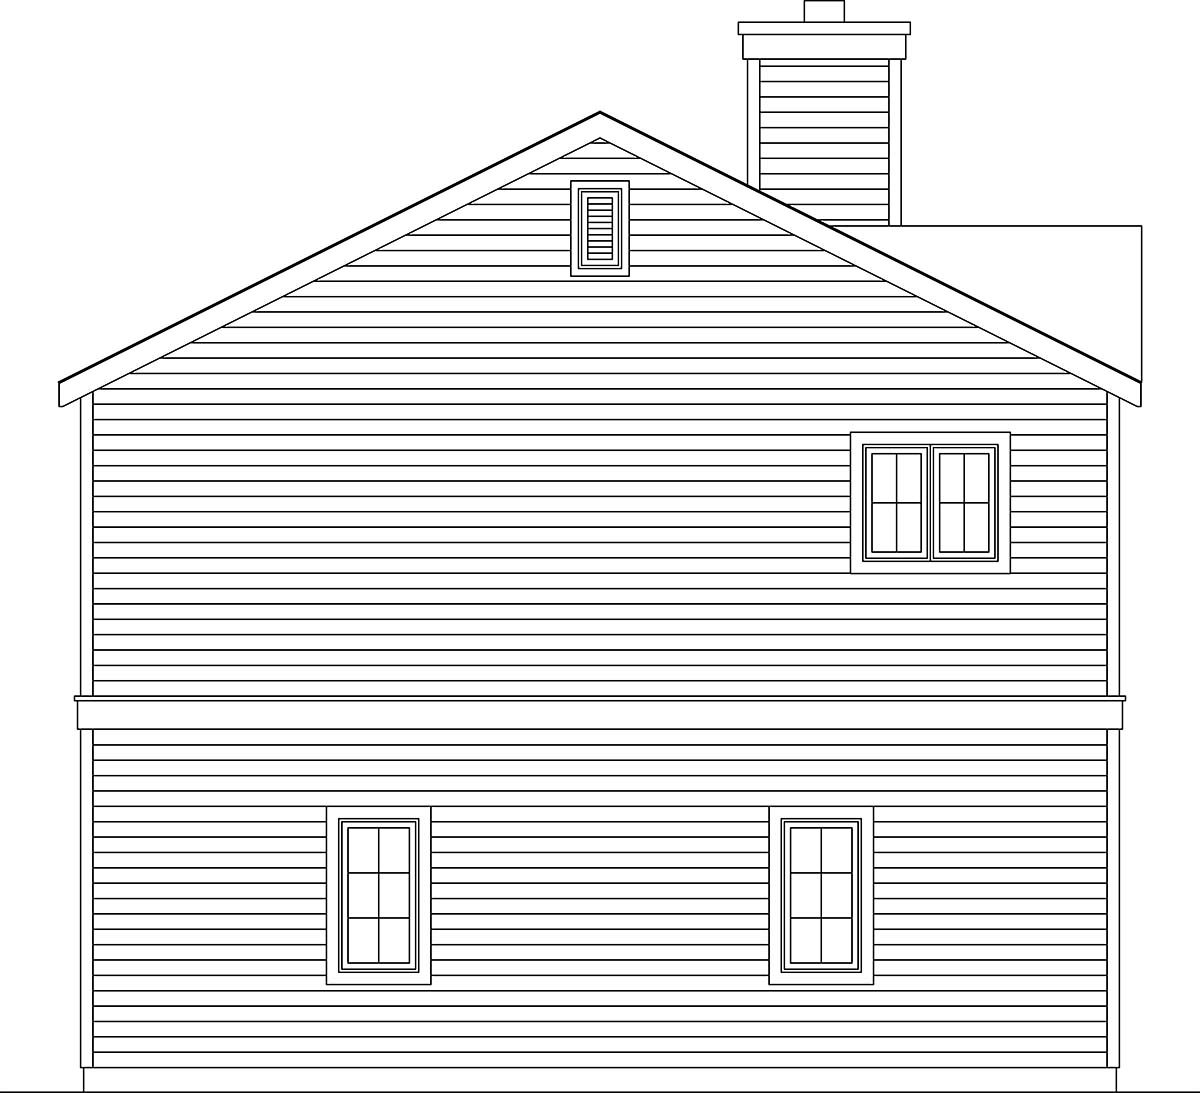 Traditional 3 Car Garage Apartment Plan 45192 with 2 Beds, 2 Baths Picture 2